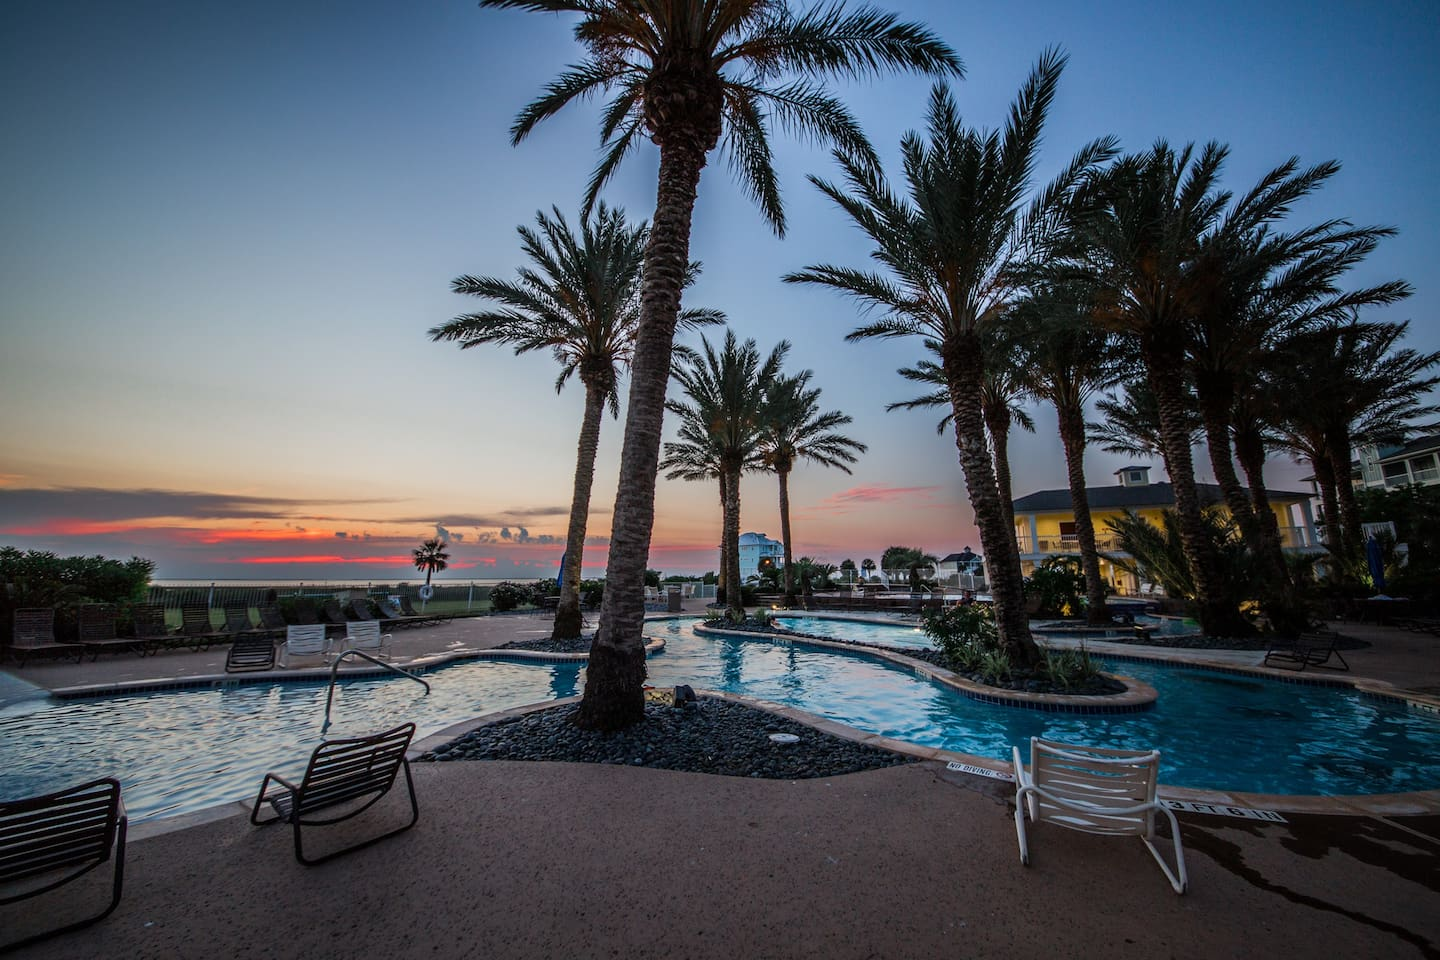 Sunset at Lazy River Pool